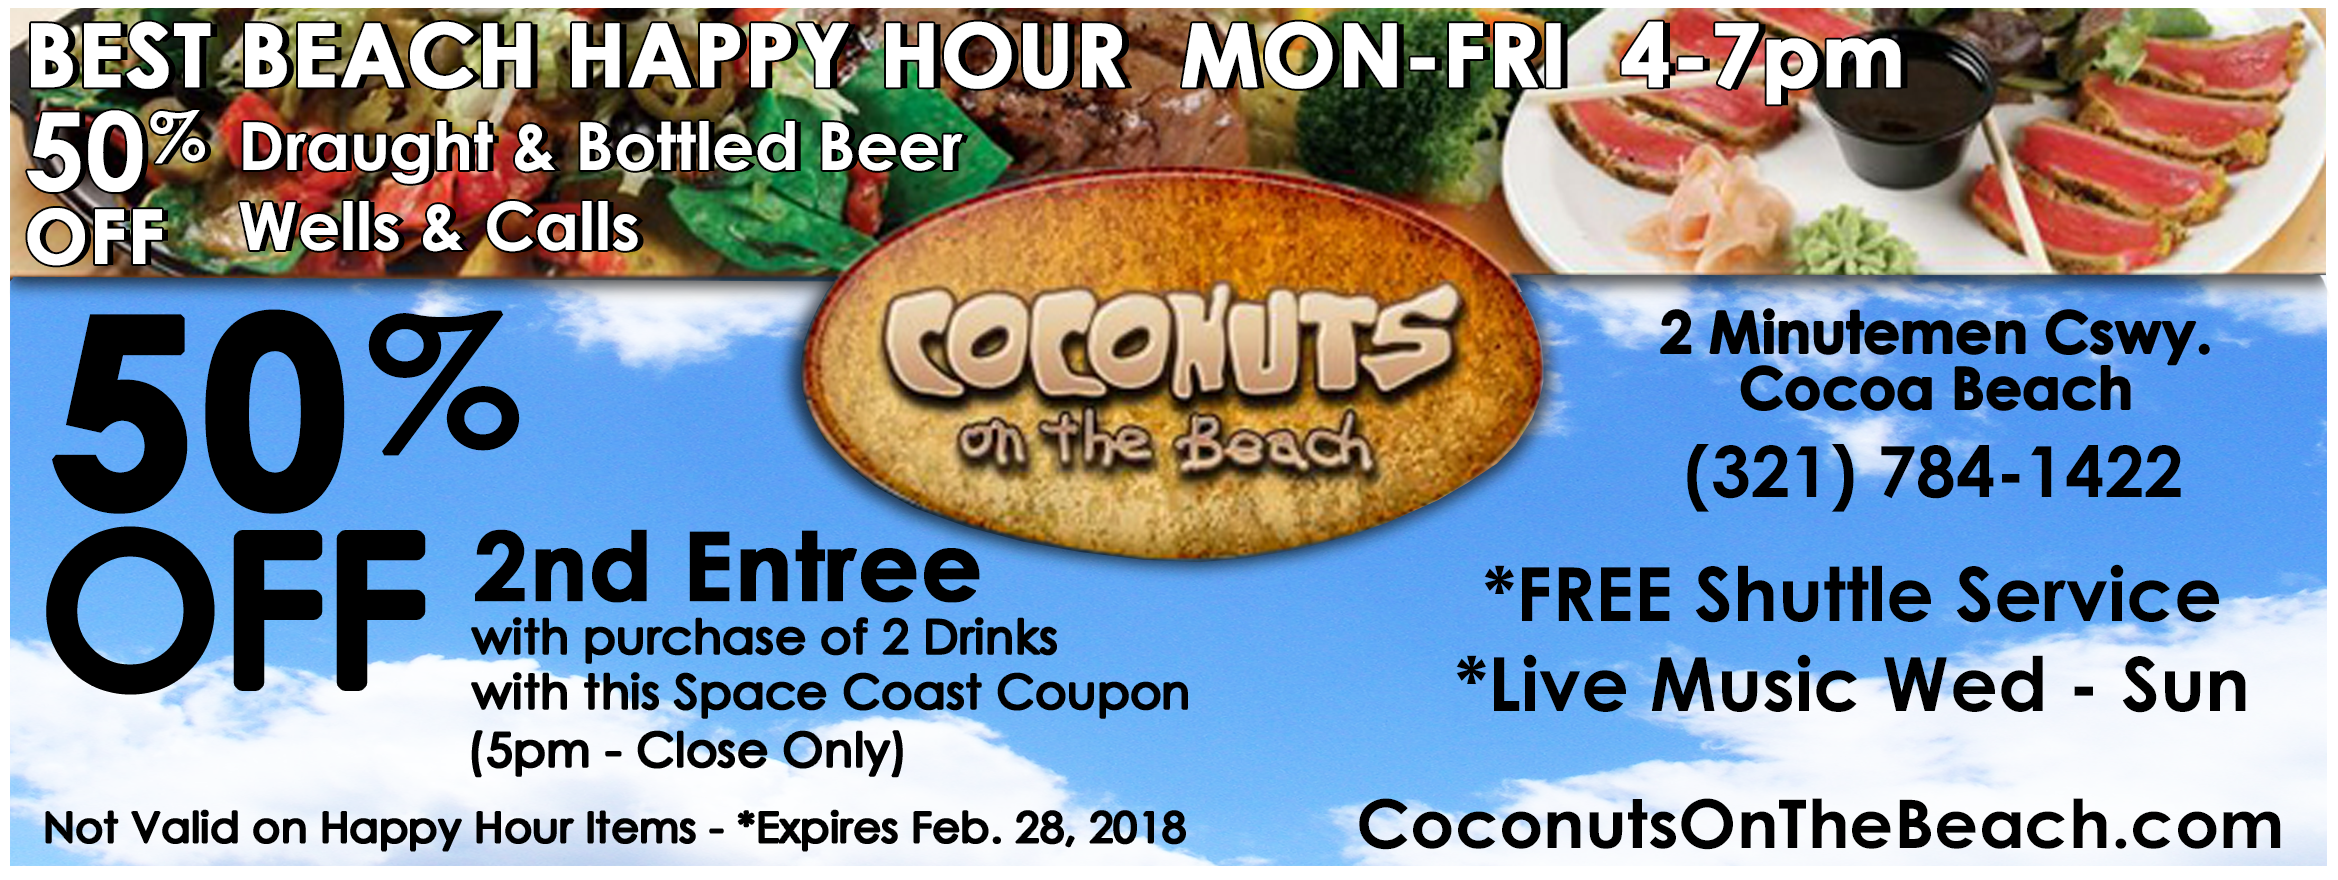 Space Coast Coupons Inc Restaurant Coupons Cape Canaveral